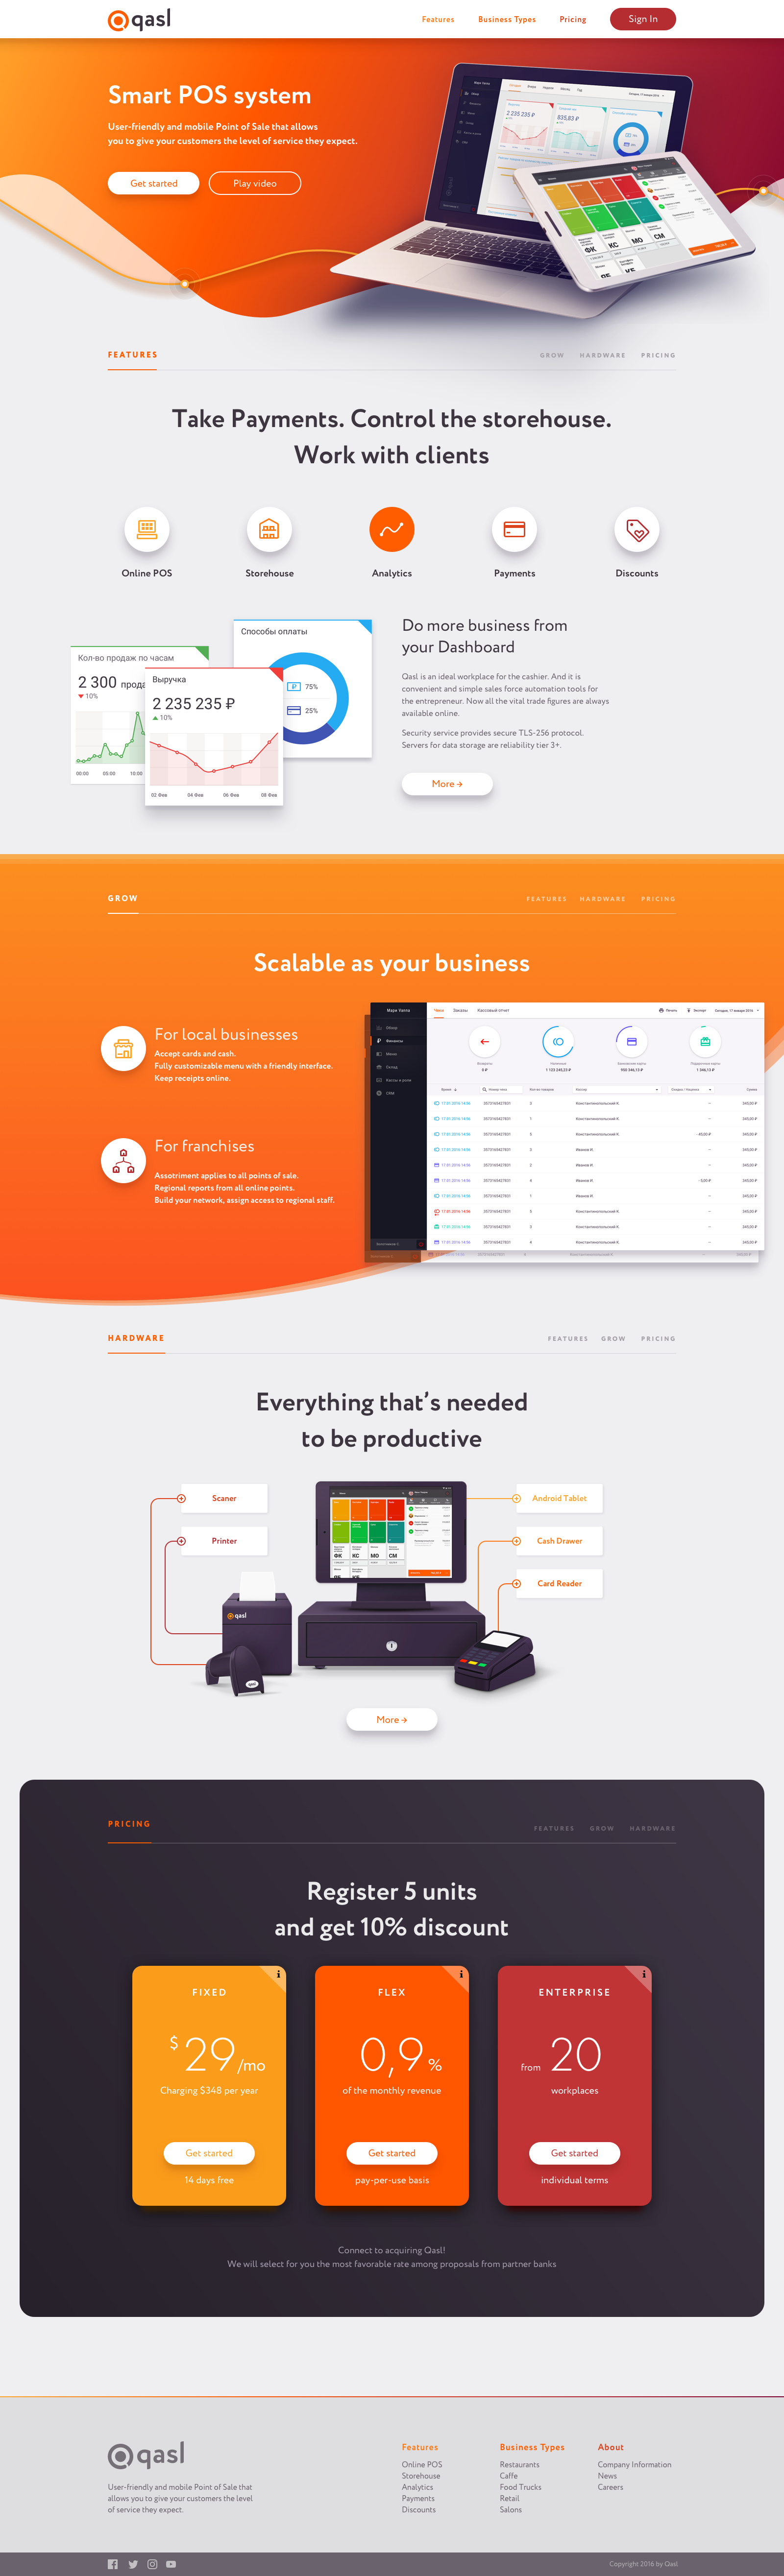 Dribbble – real_pixels.png by Sergey Zolotnikov